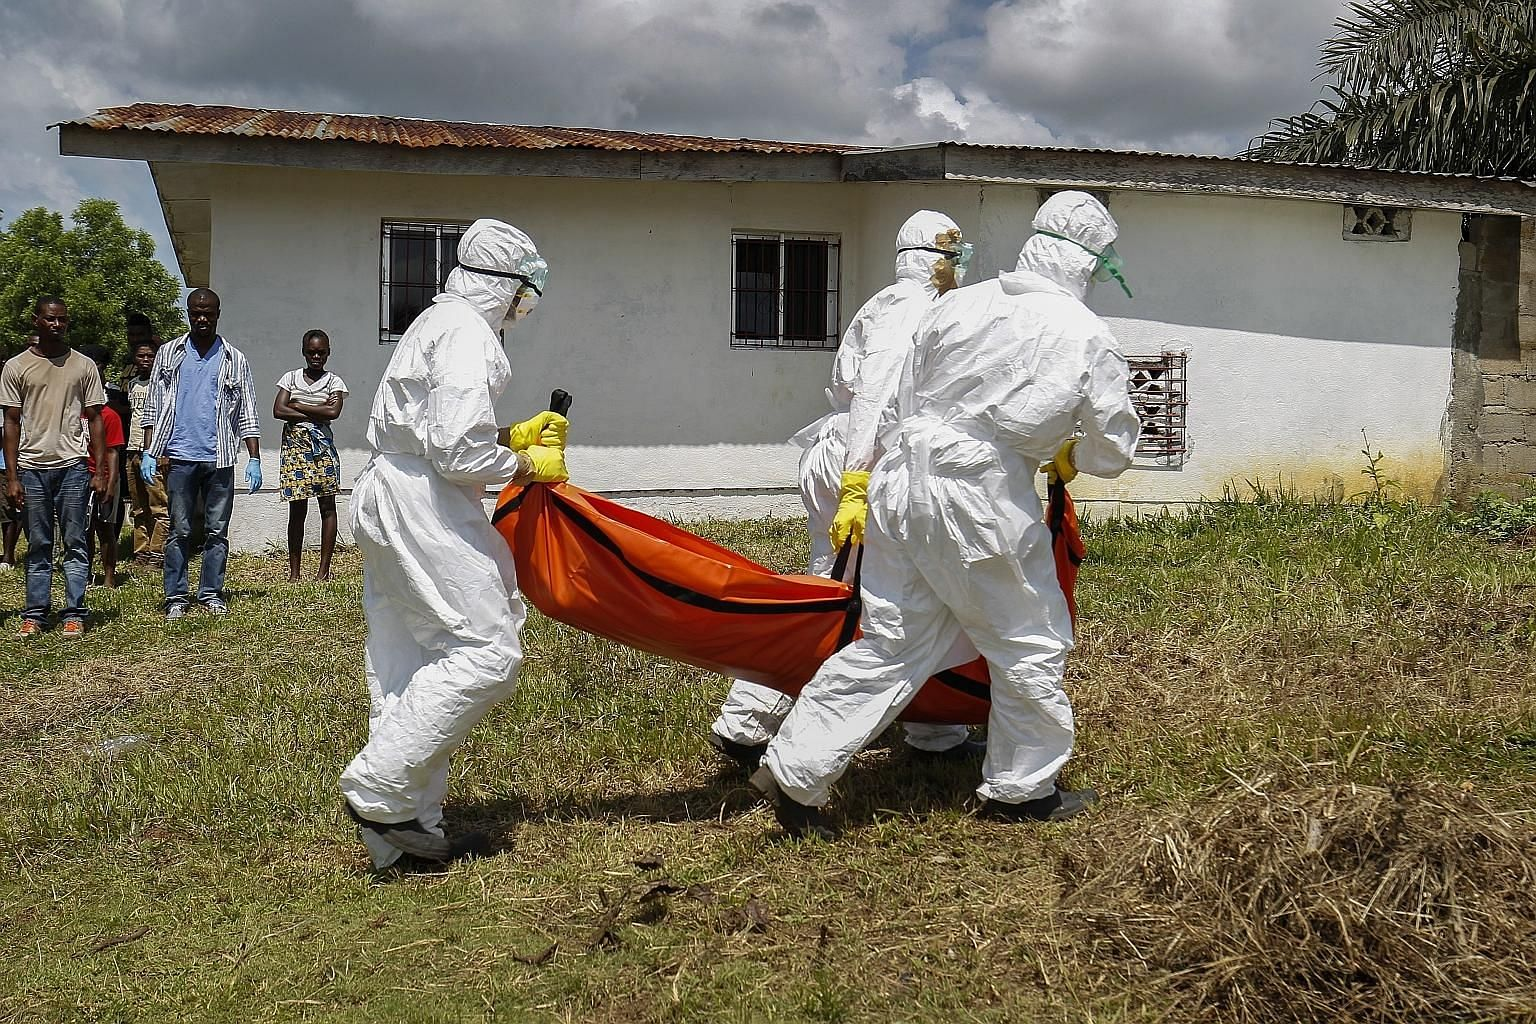 A burial team retrieving the body of a suspected Ebola victim in Banjor, on the outskirts of Monrovia, Liberia, in this October 2014 file photo. The Ebola flare-up that tore through West Africa in 2014 killed more than 11,000.